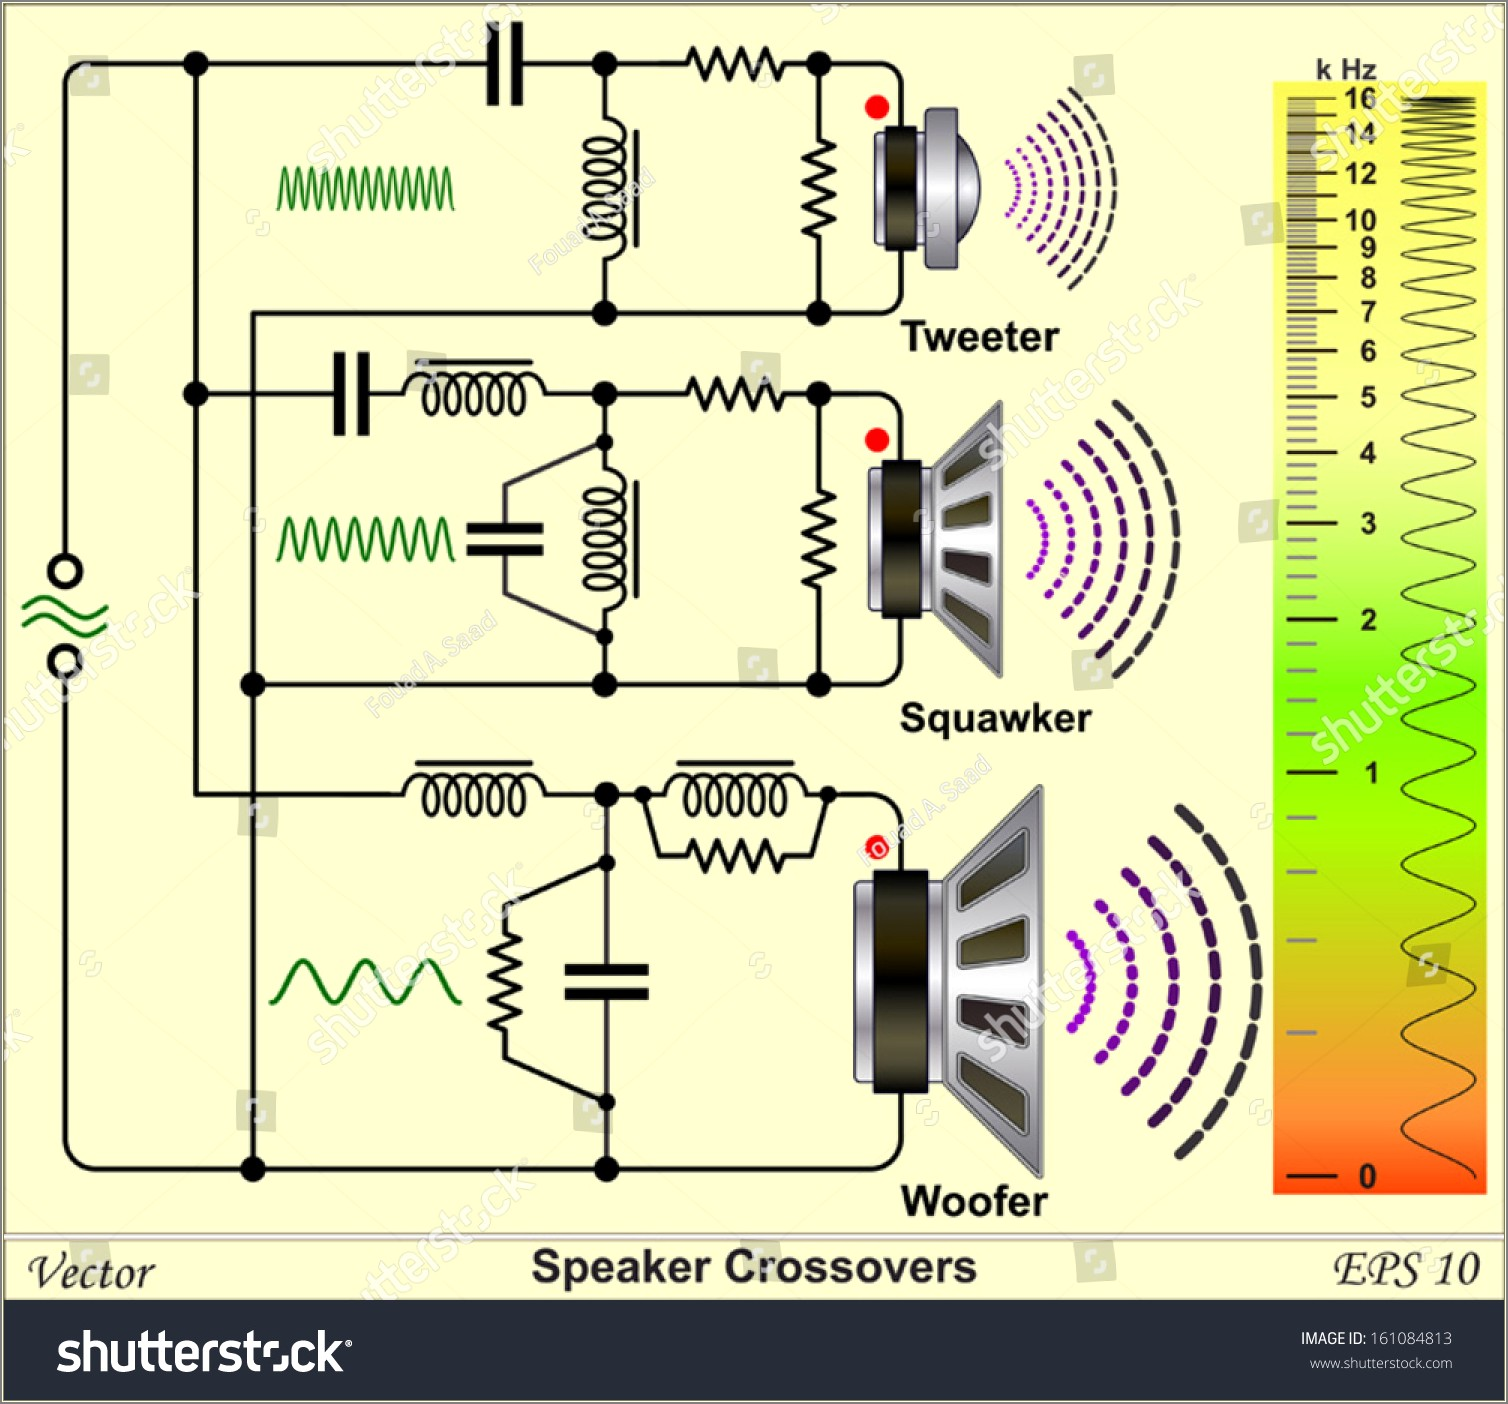 Simple Speaker Crossover Circuit Diagram